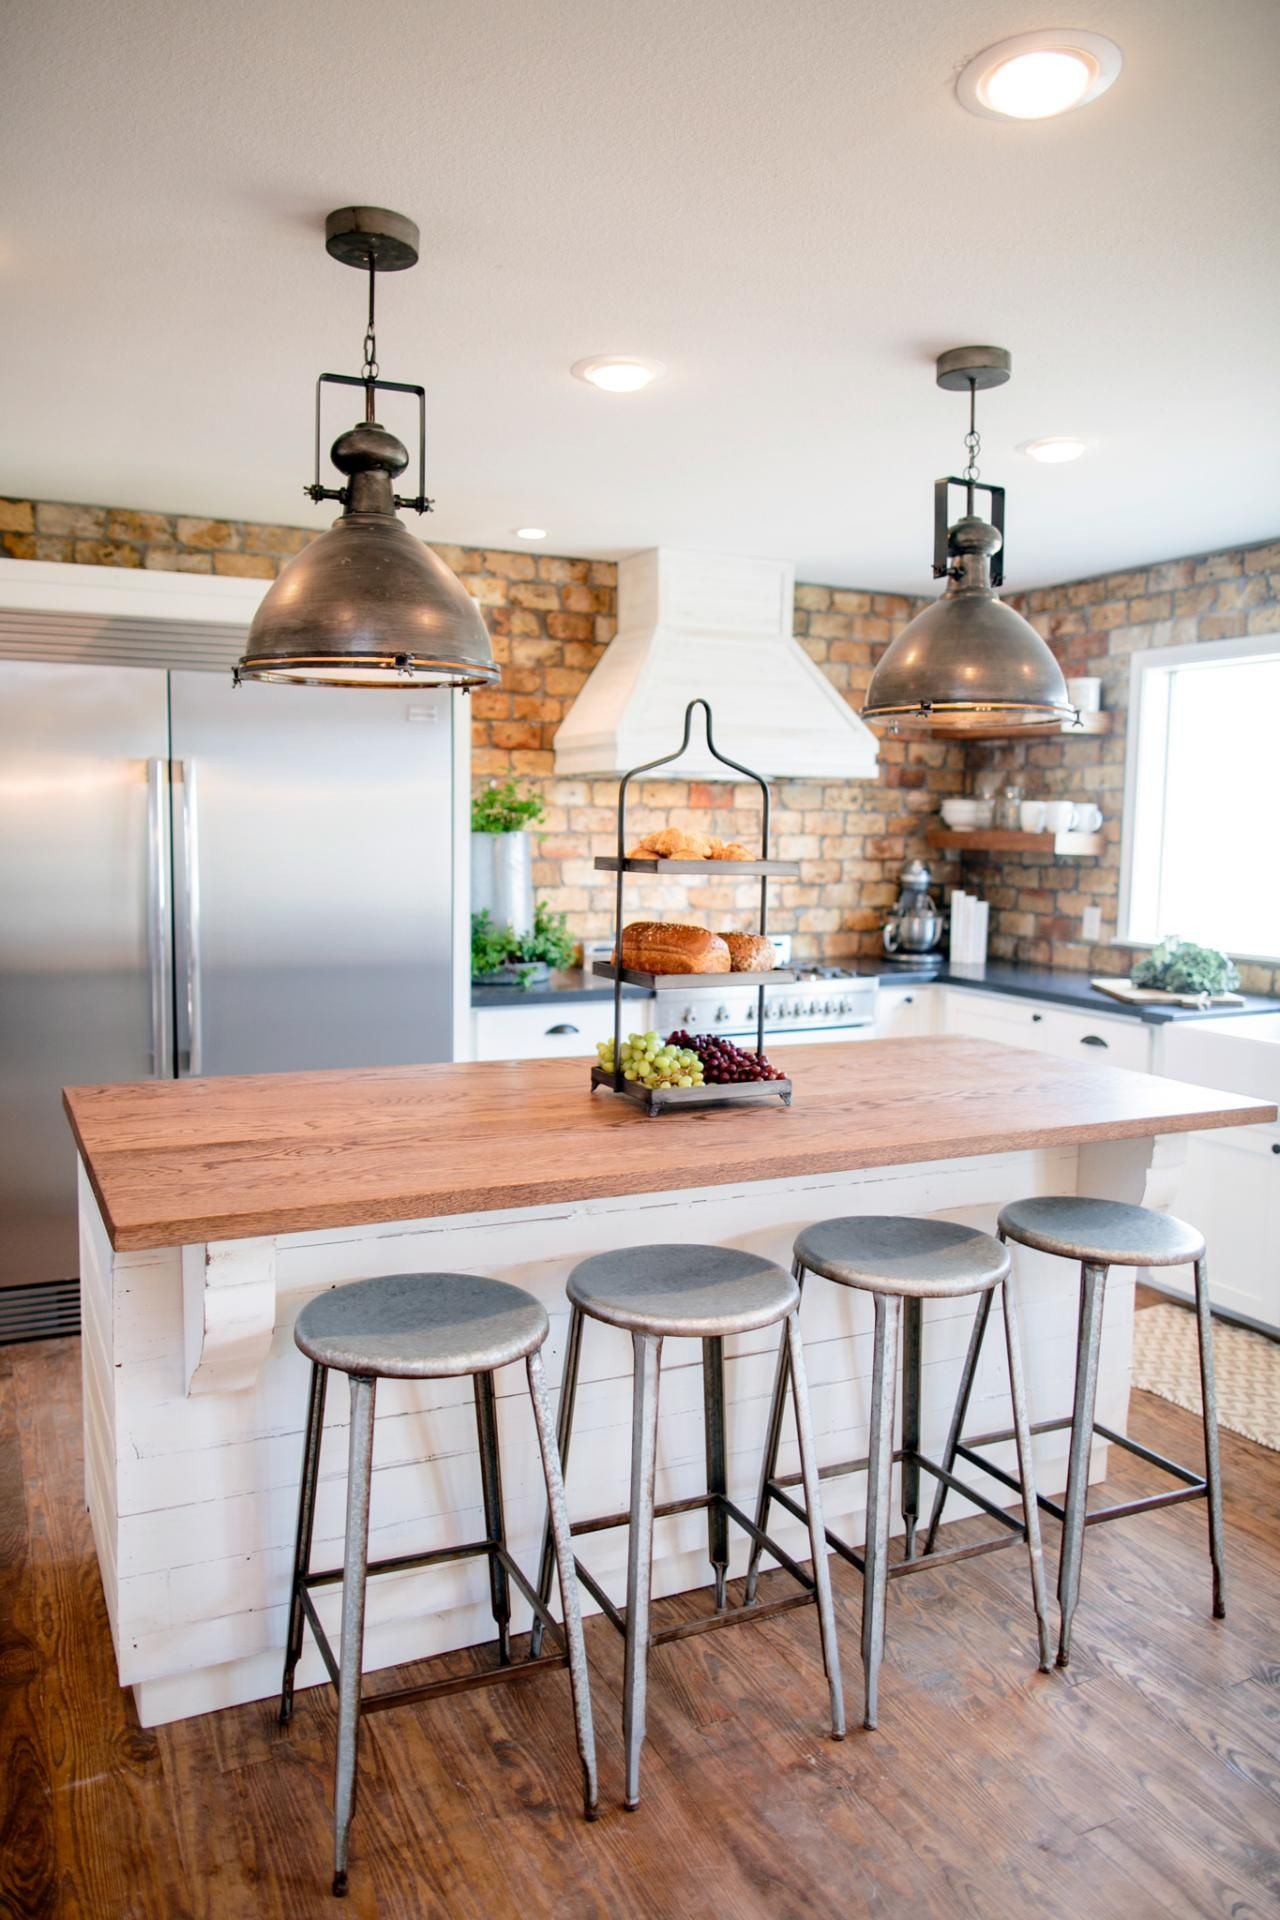 Joanna Gaines Kitchen Cabinets And Islands